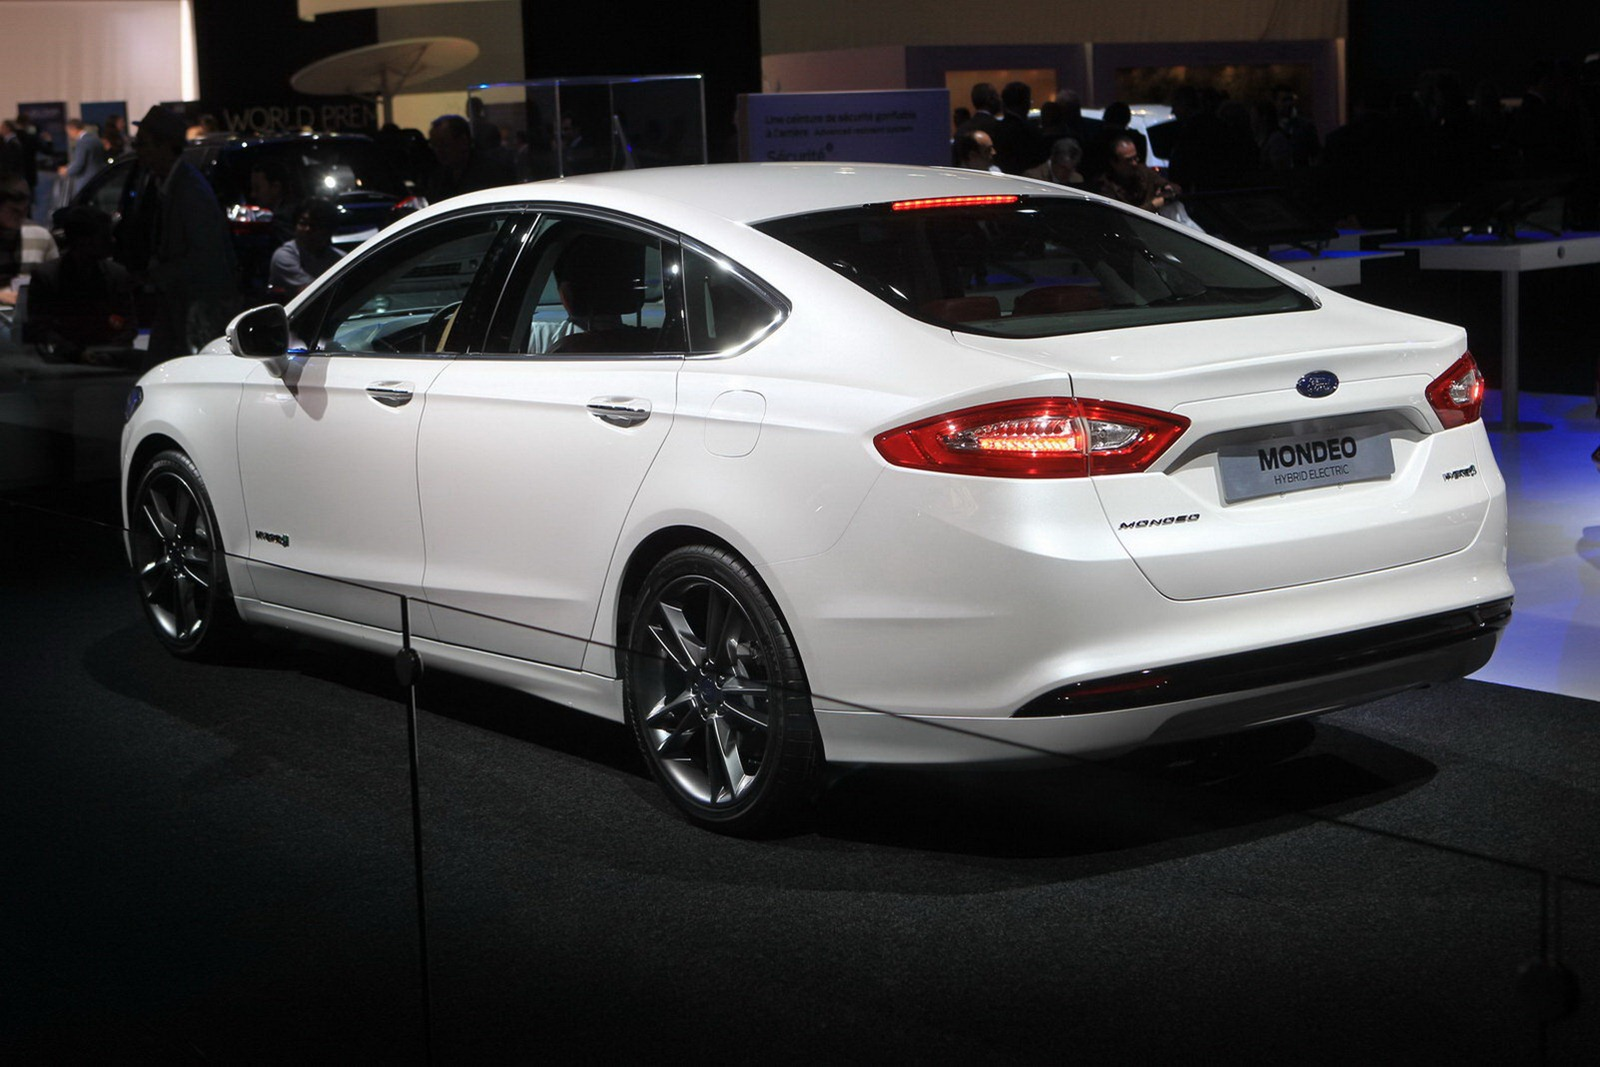 2012 Ford Mondeo #9